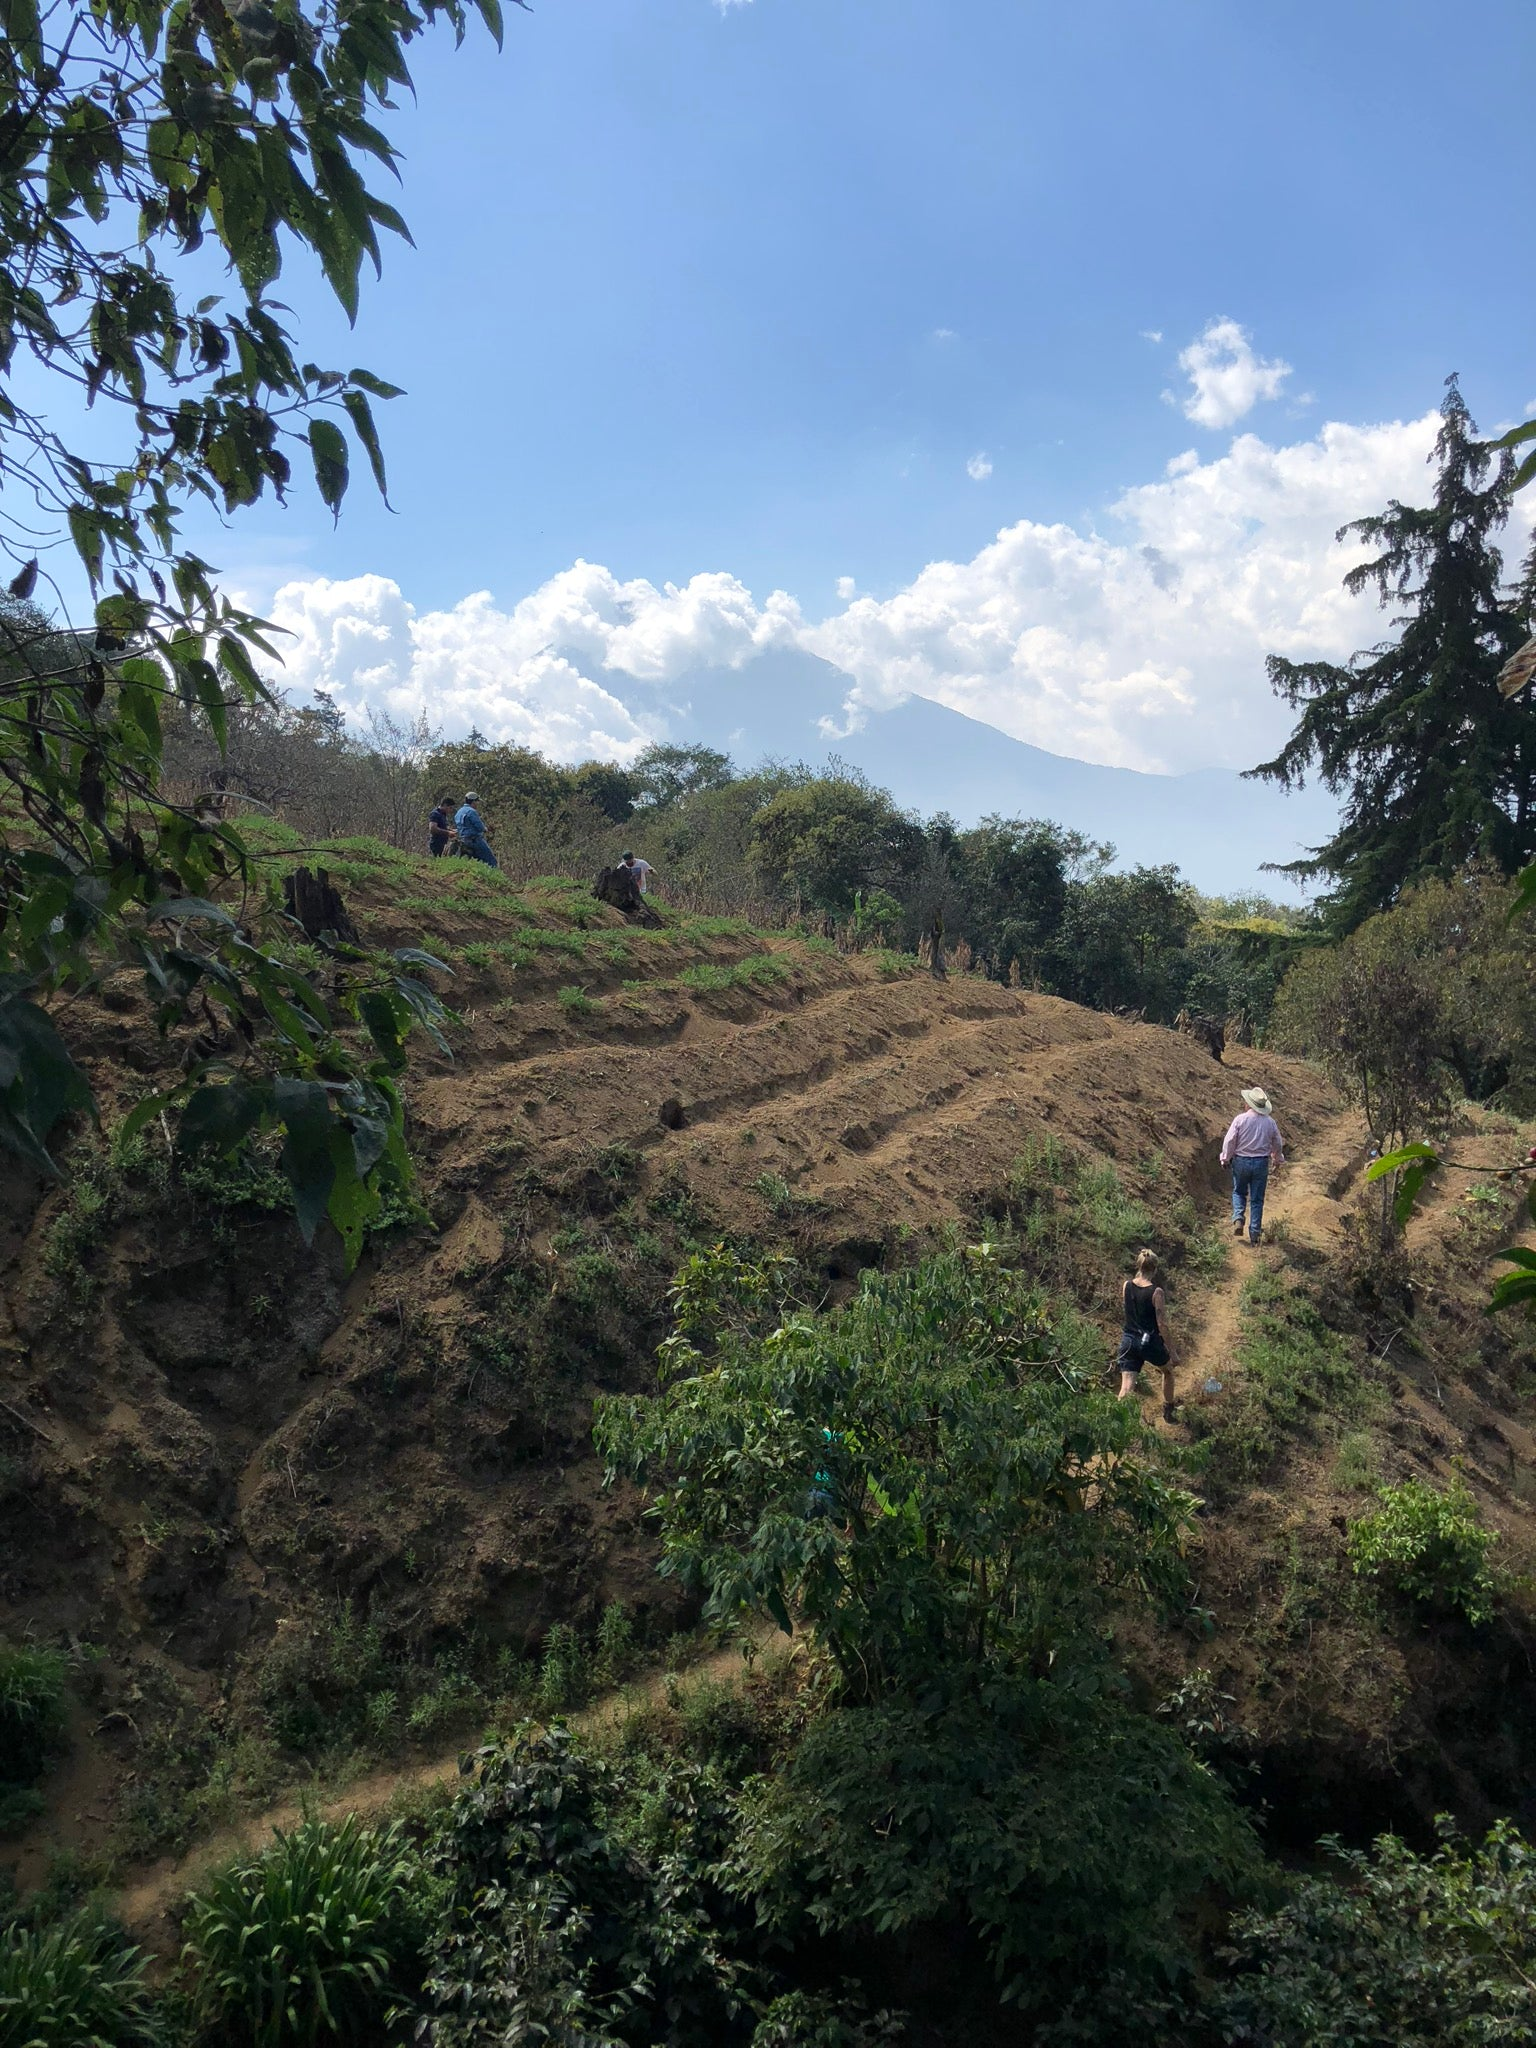 Walking through coffee trees on the side of a volcano south of Antigua, Guatemala